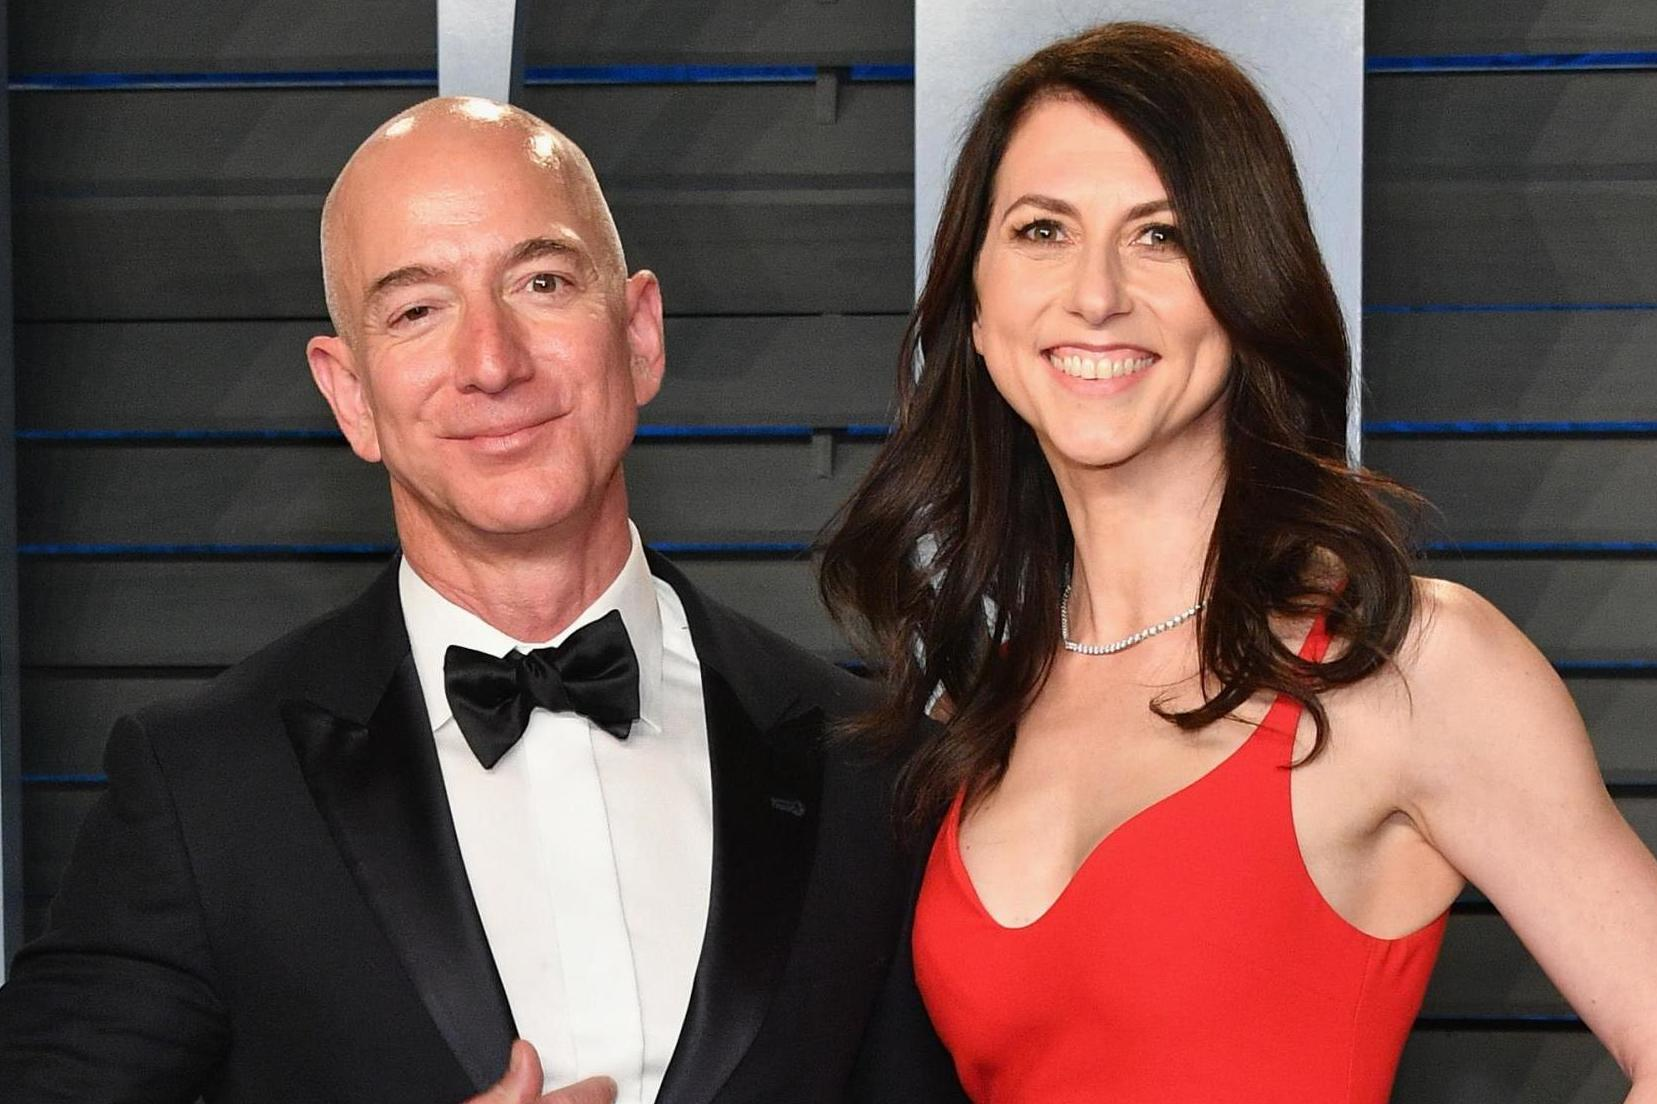 Jeff Bezos house in Flatiron: Amazon CEO is reportedly buying $80 million NYC penthouse apartment | London Evening Standard - 6 June 2019